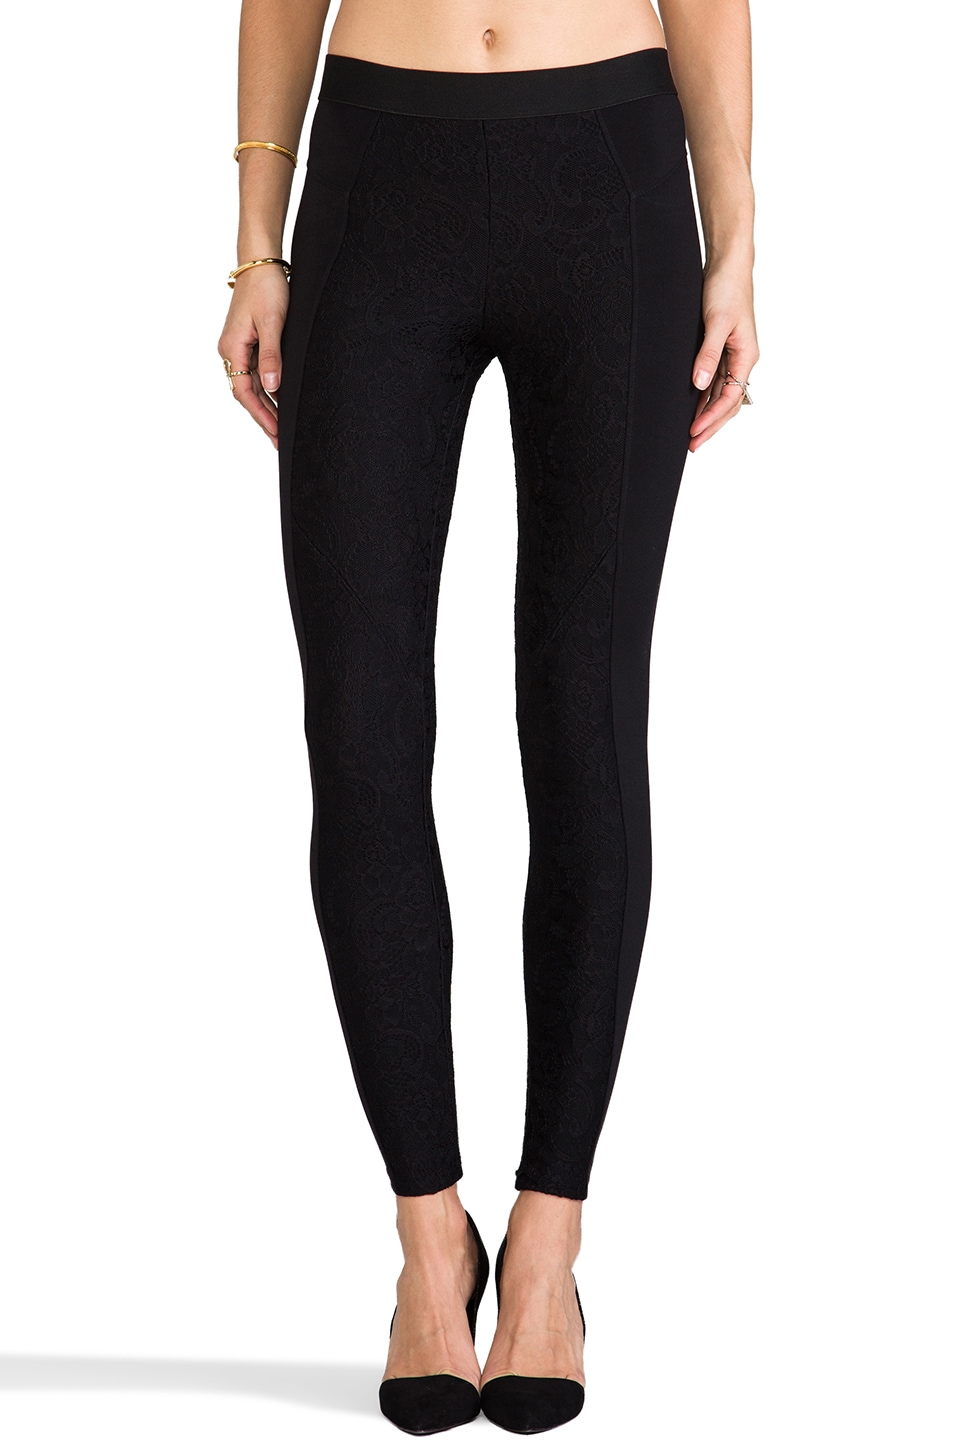 David Lerner Bergen Lace Legging in Black